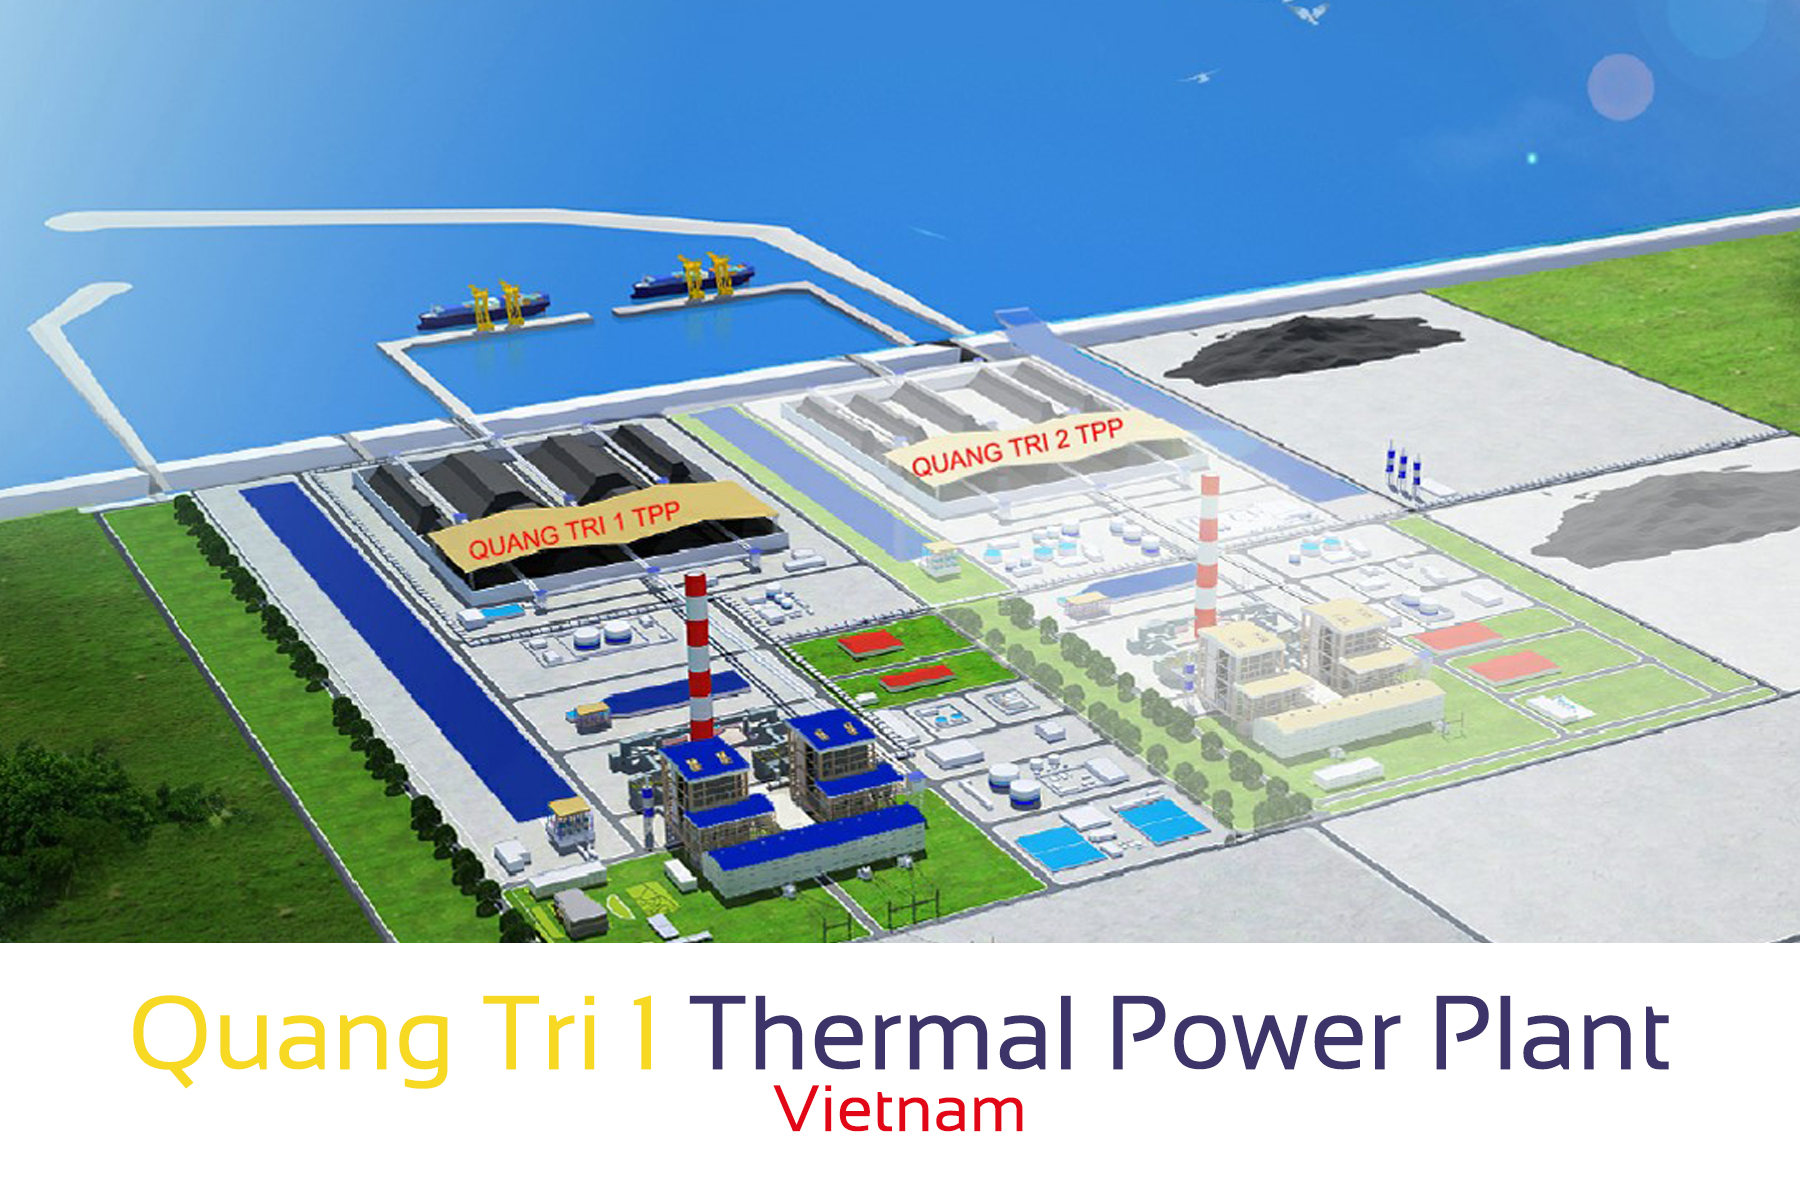 Quang Tri 1 Thermal Power Plant Projectc